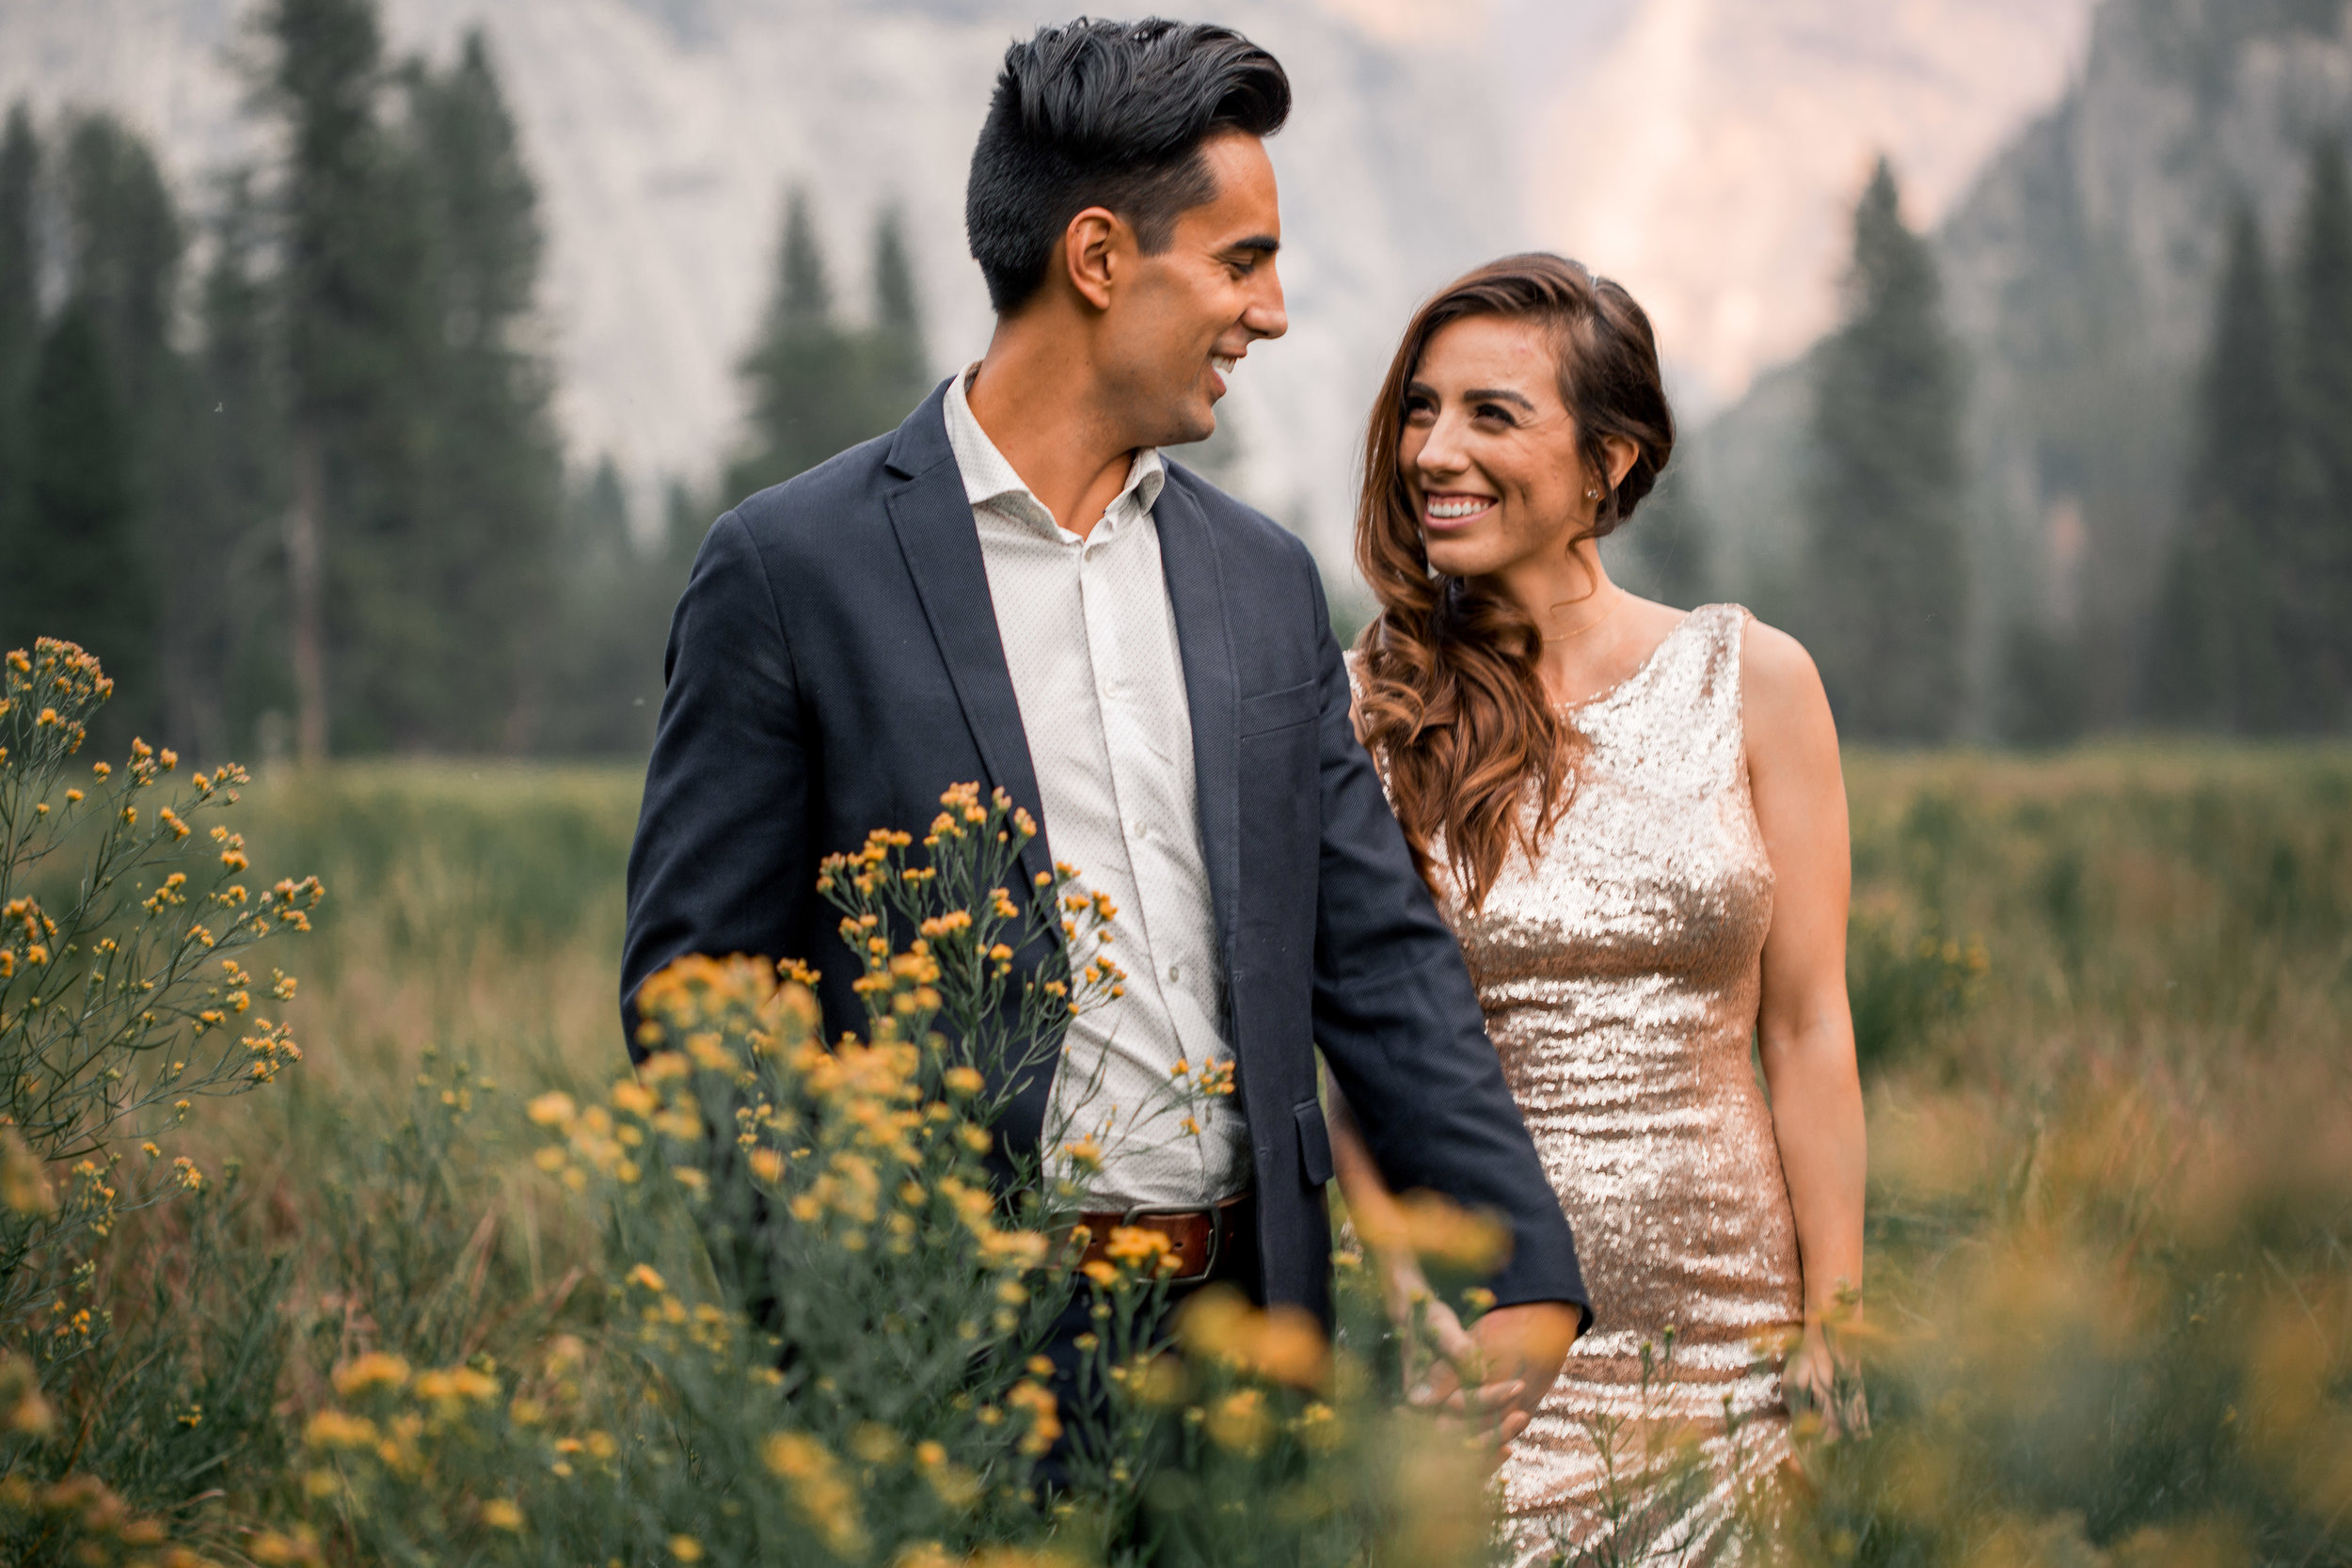 nicole-daacke-photography-yosemite-national-park-adventurous-engagement-session-half-dome-engagement-session-anniversary-photographer-yosemite-elopement-photographer-yosemite-intimate-wedding-photography-6.jpg